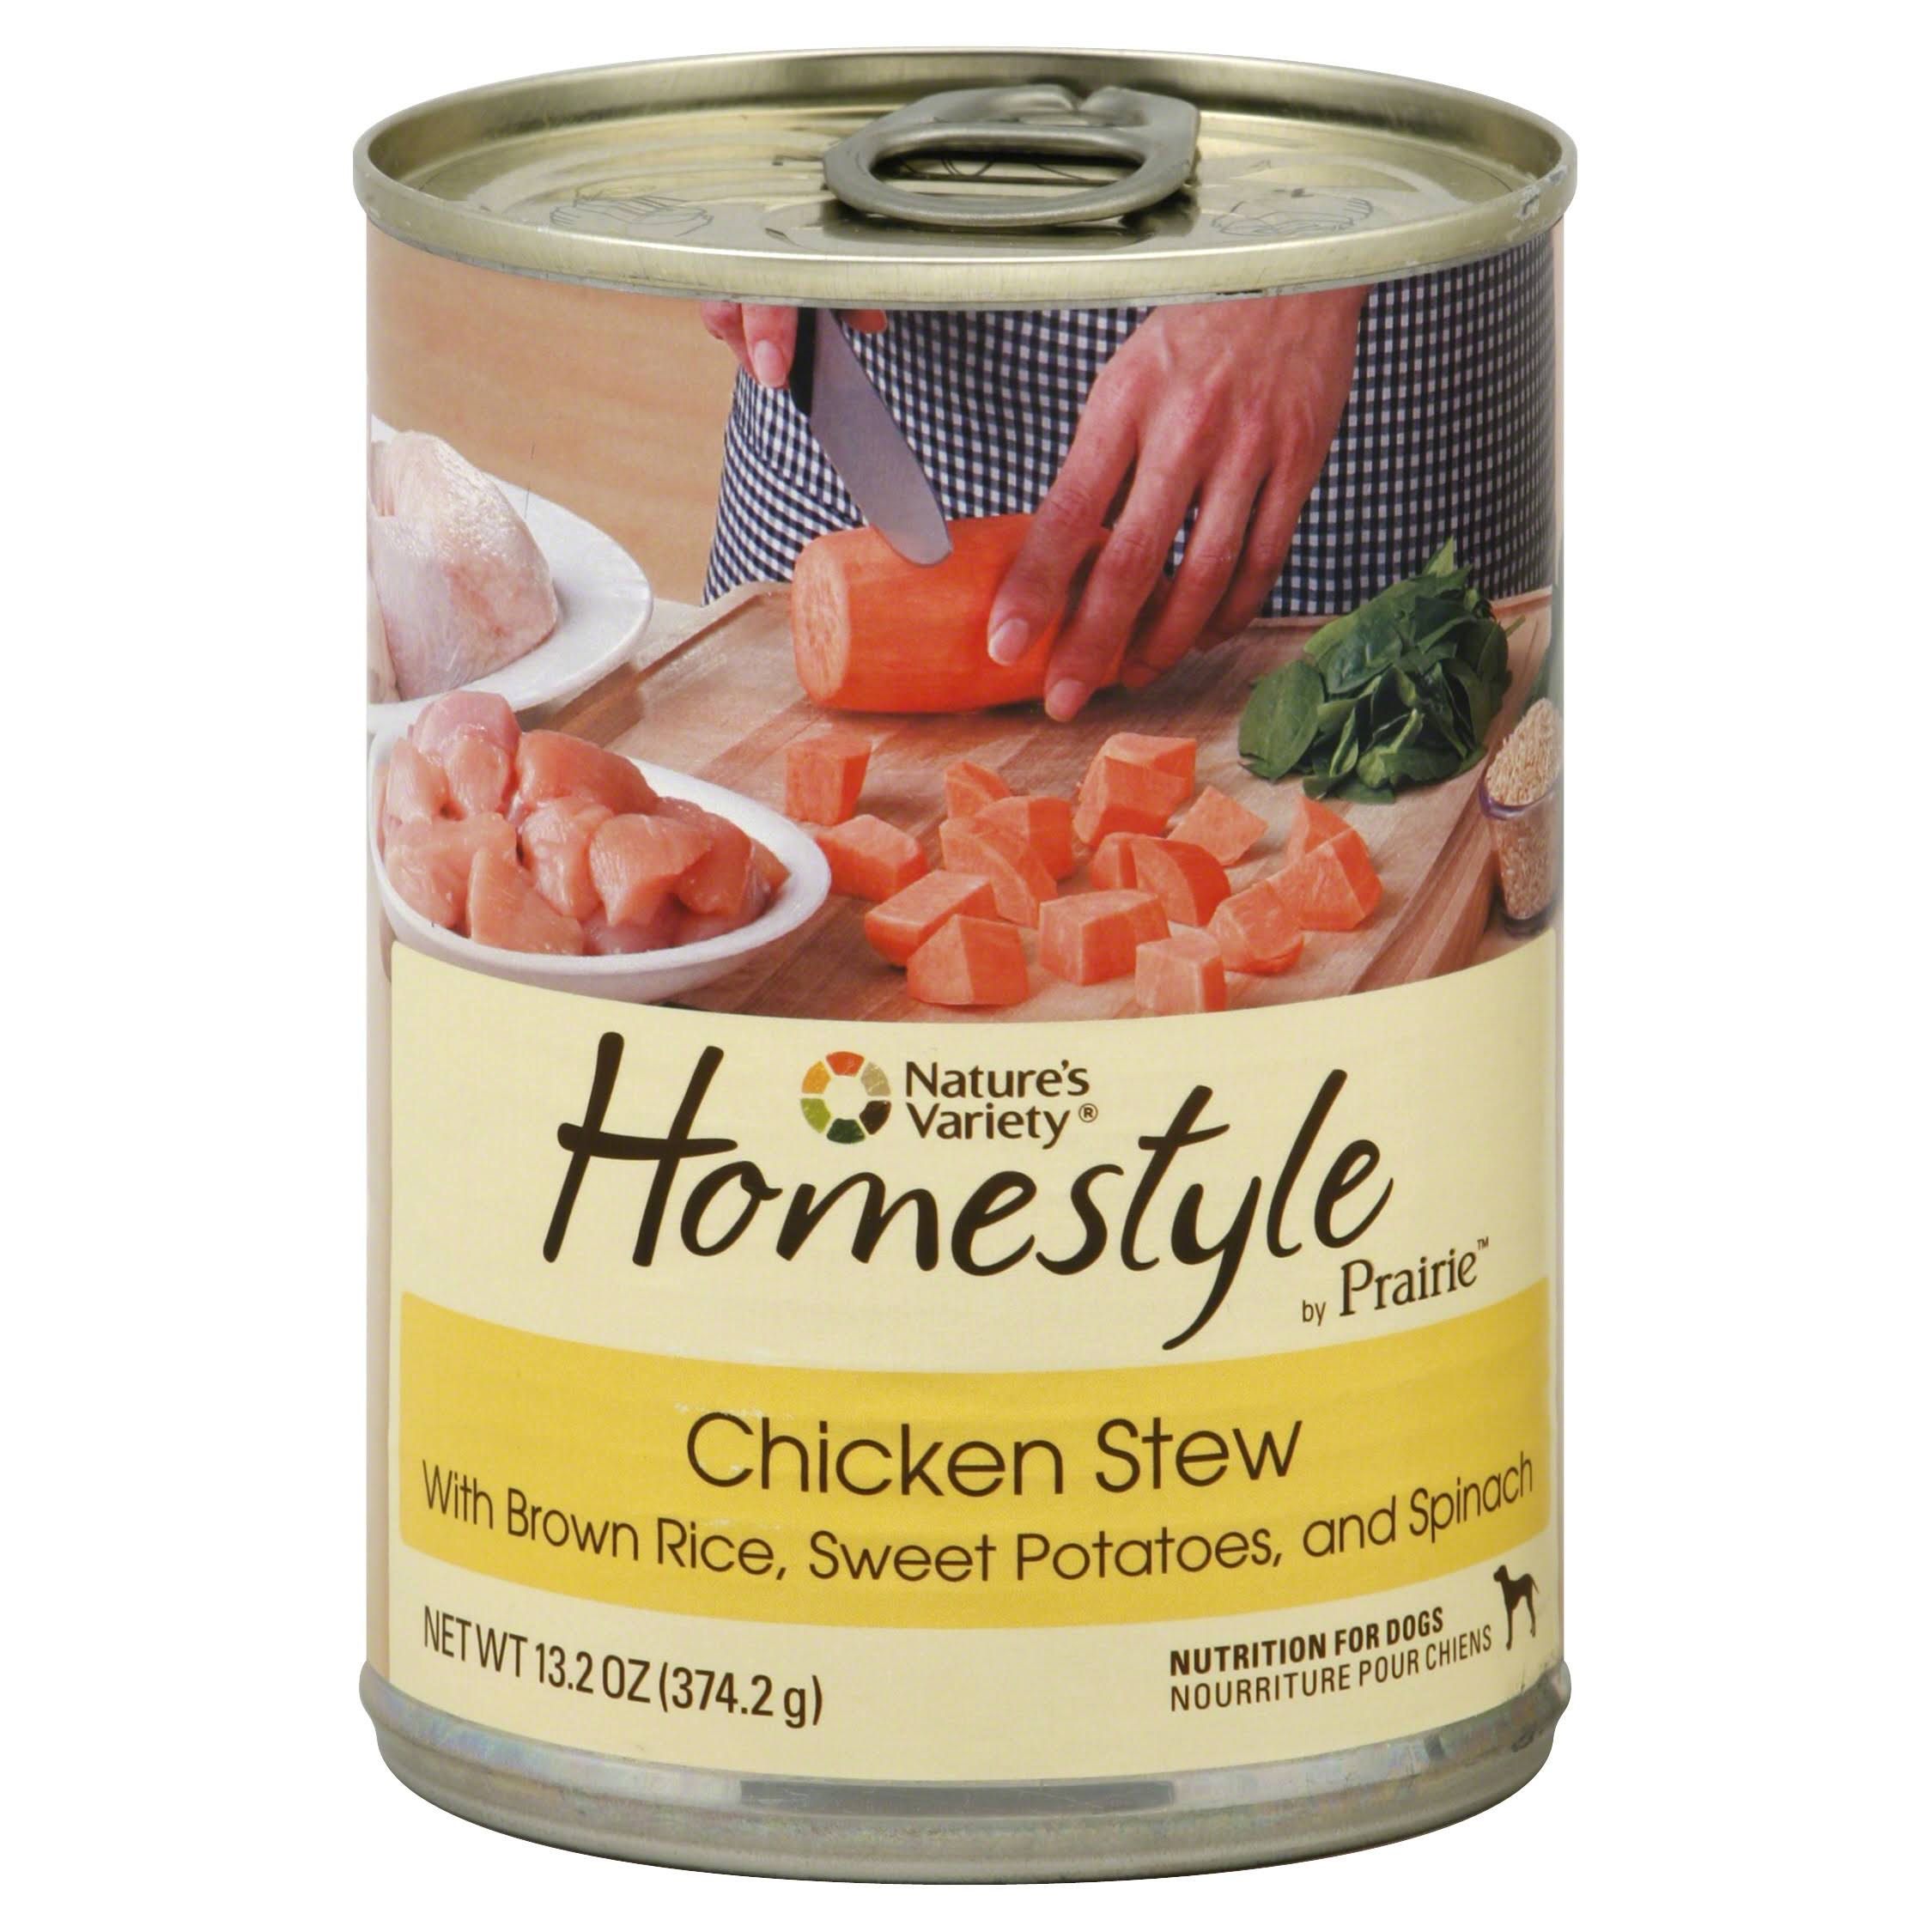 Nature's Variety Homestyle by Prairie Canned Dog Food - Chicken Stew